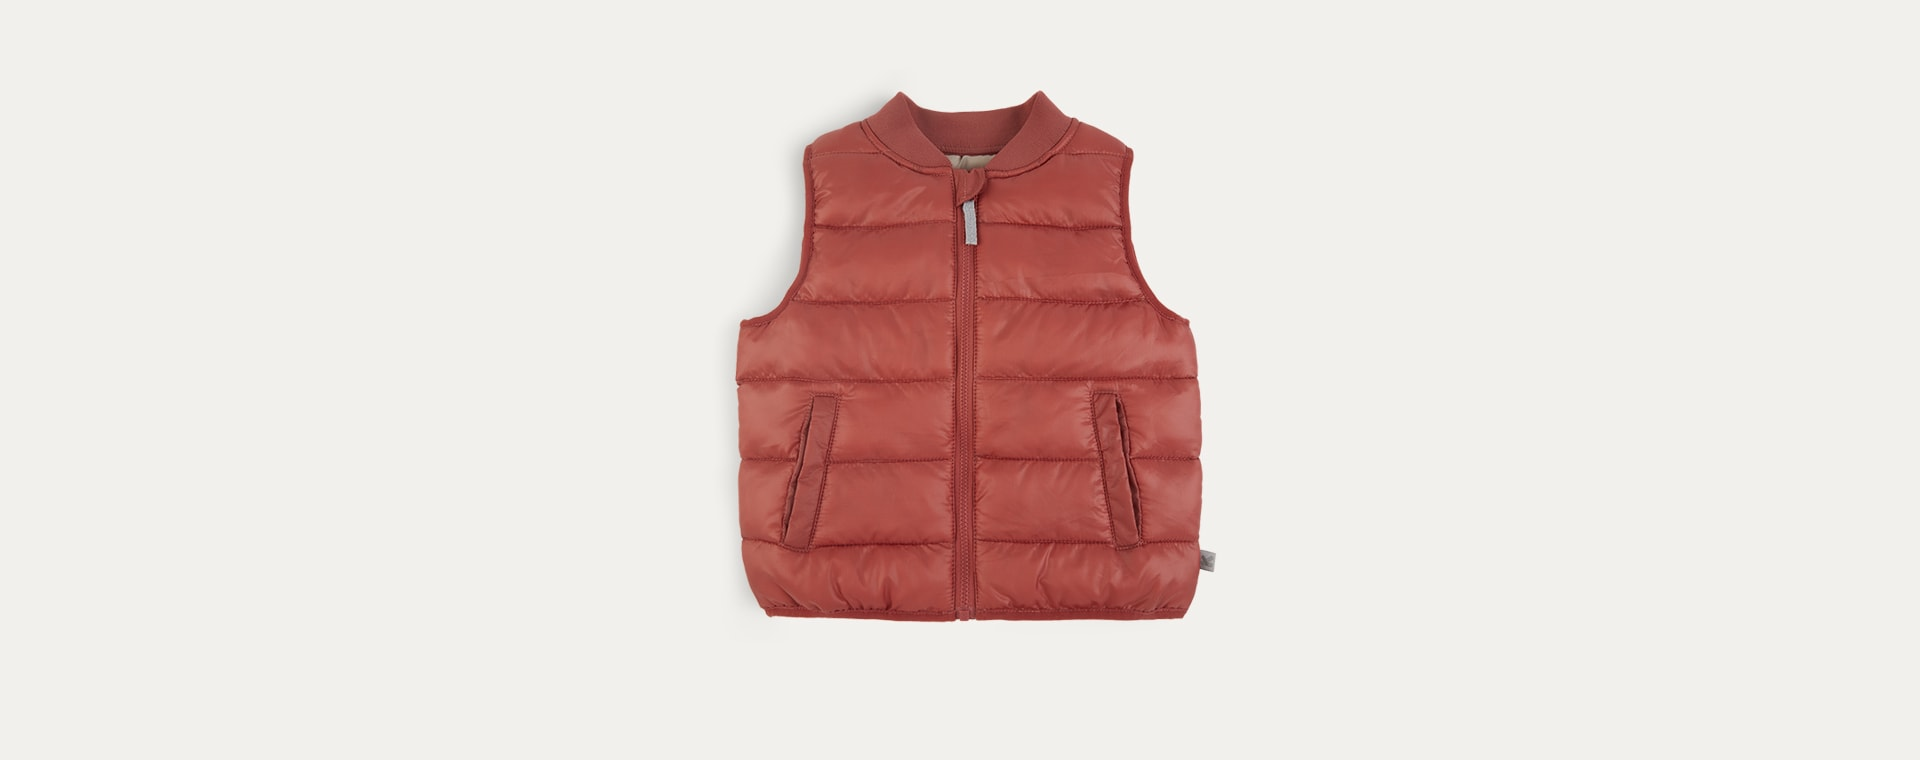 Paprika KIDLY Label Recycled Gilet